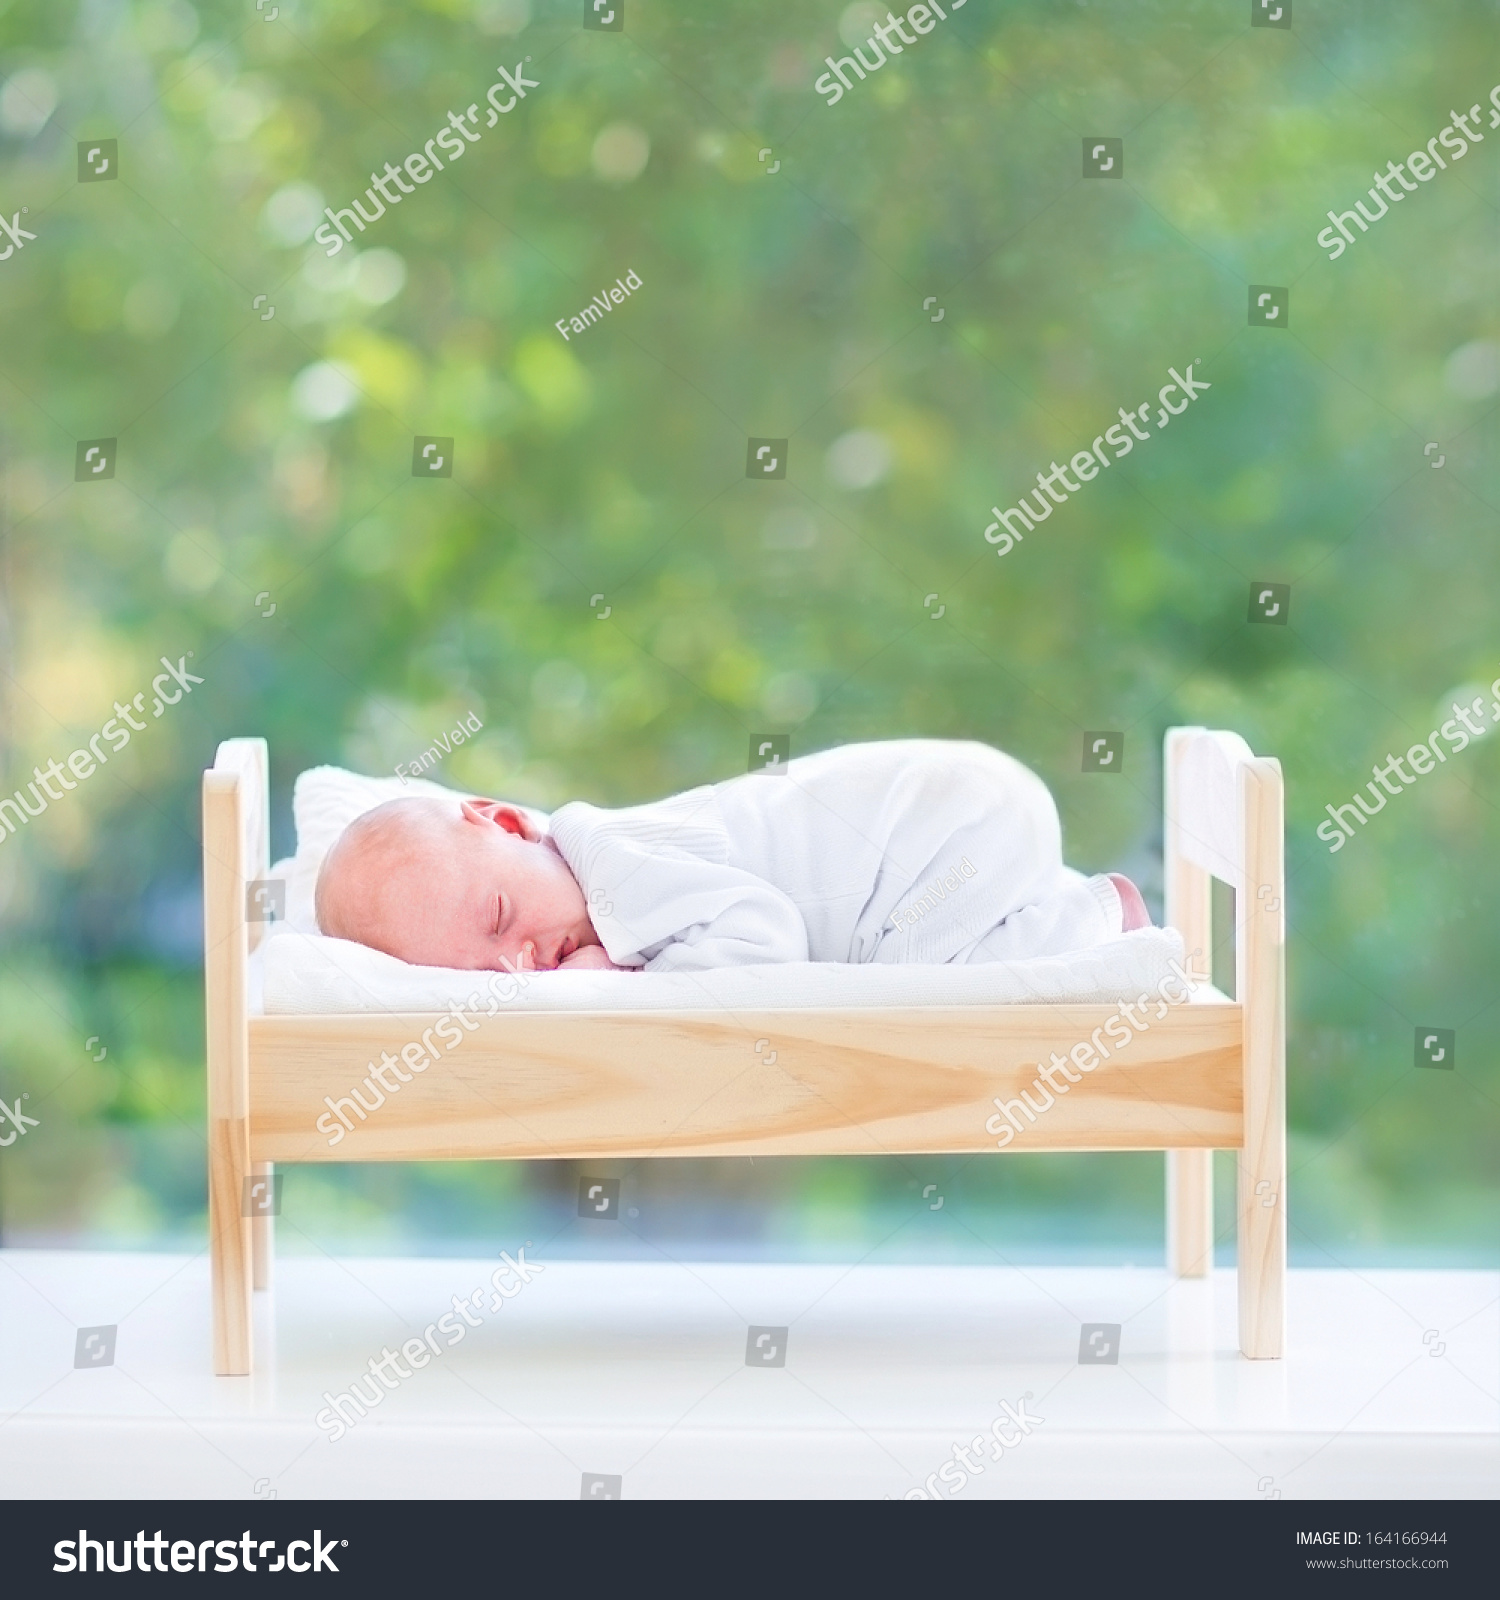 Baby Bed Next To Bed - Tiny newborn baby sleeping in a toy bed next to a big window into the garden